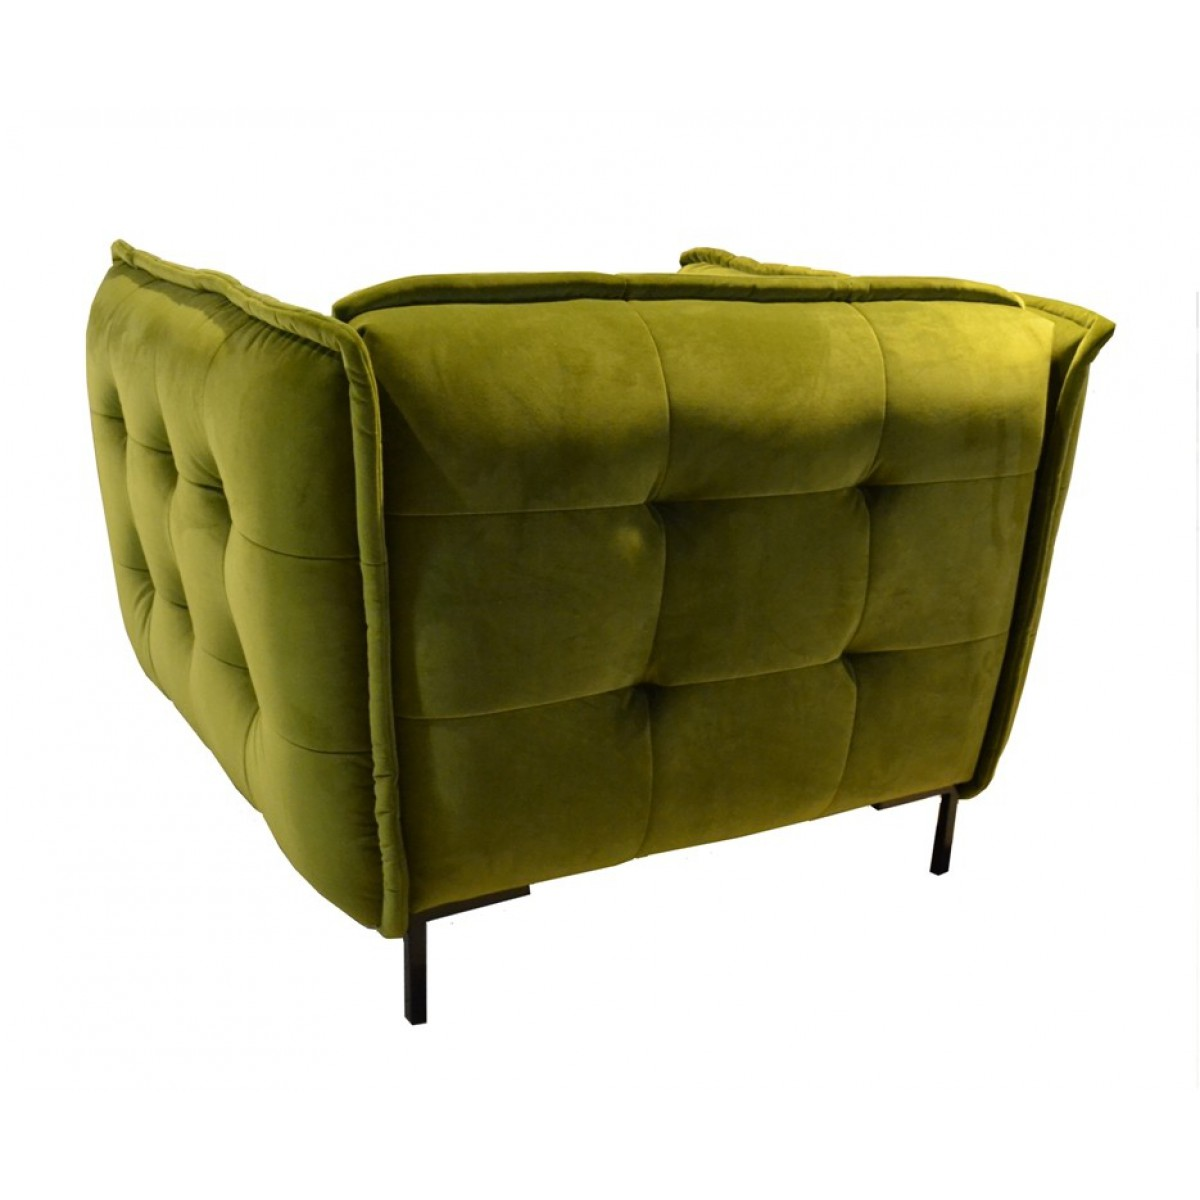 1-zits-bank_fauteuil_slimm_jim_patch_stof_seven_kusters_pearl_jeans_cognac_leer_tom_club_easy_sofa_achterkant